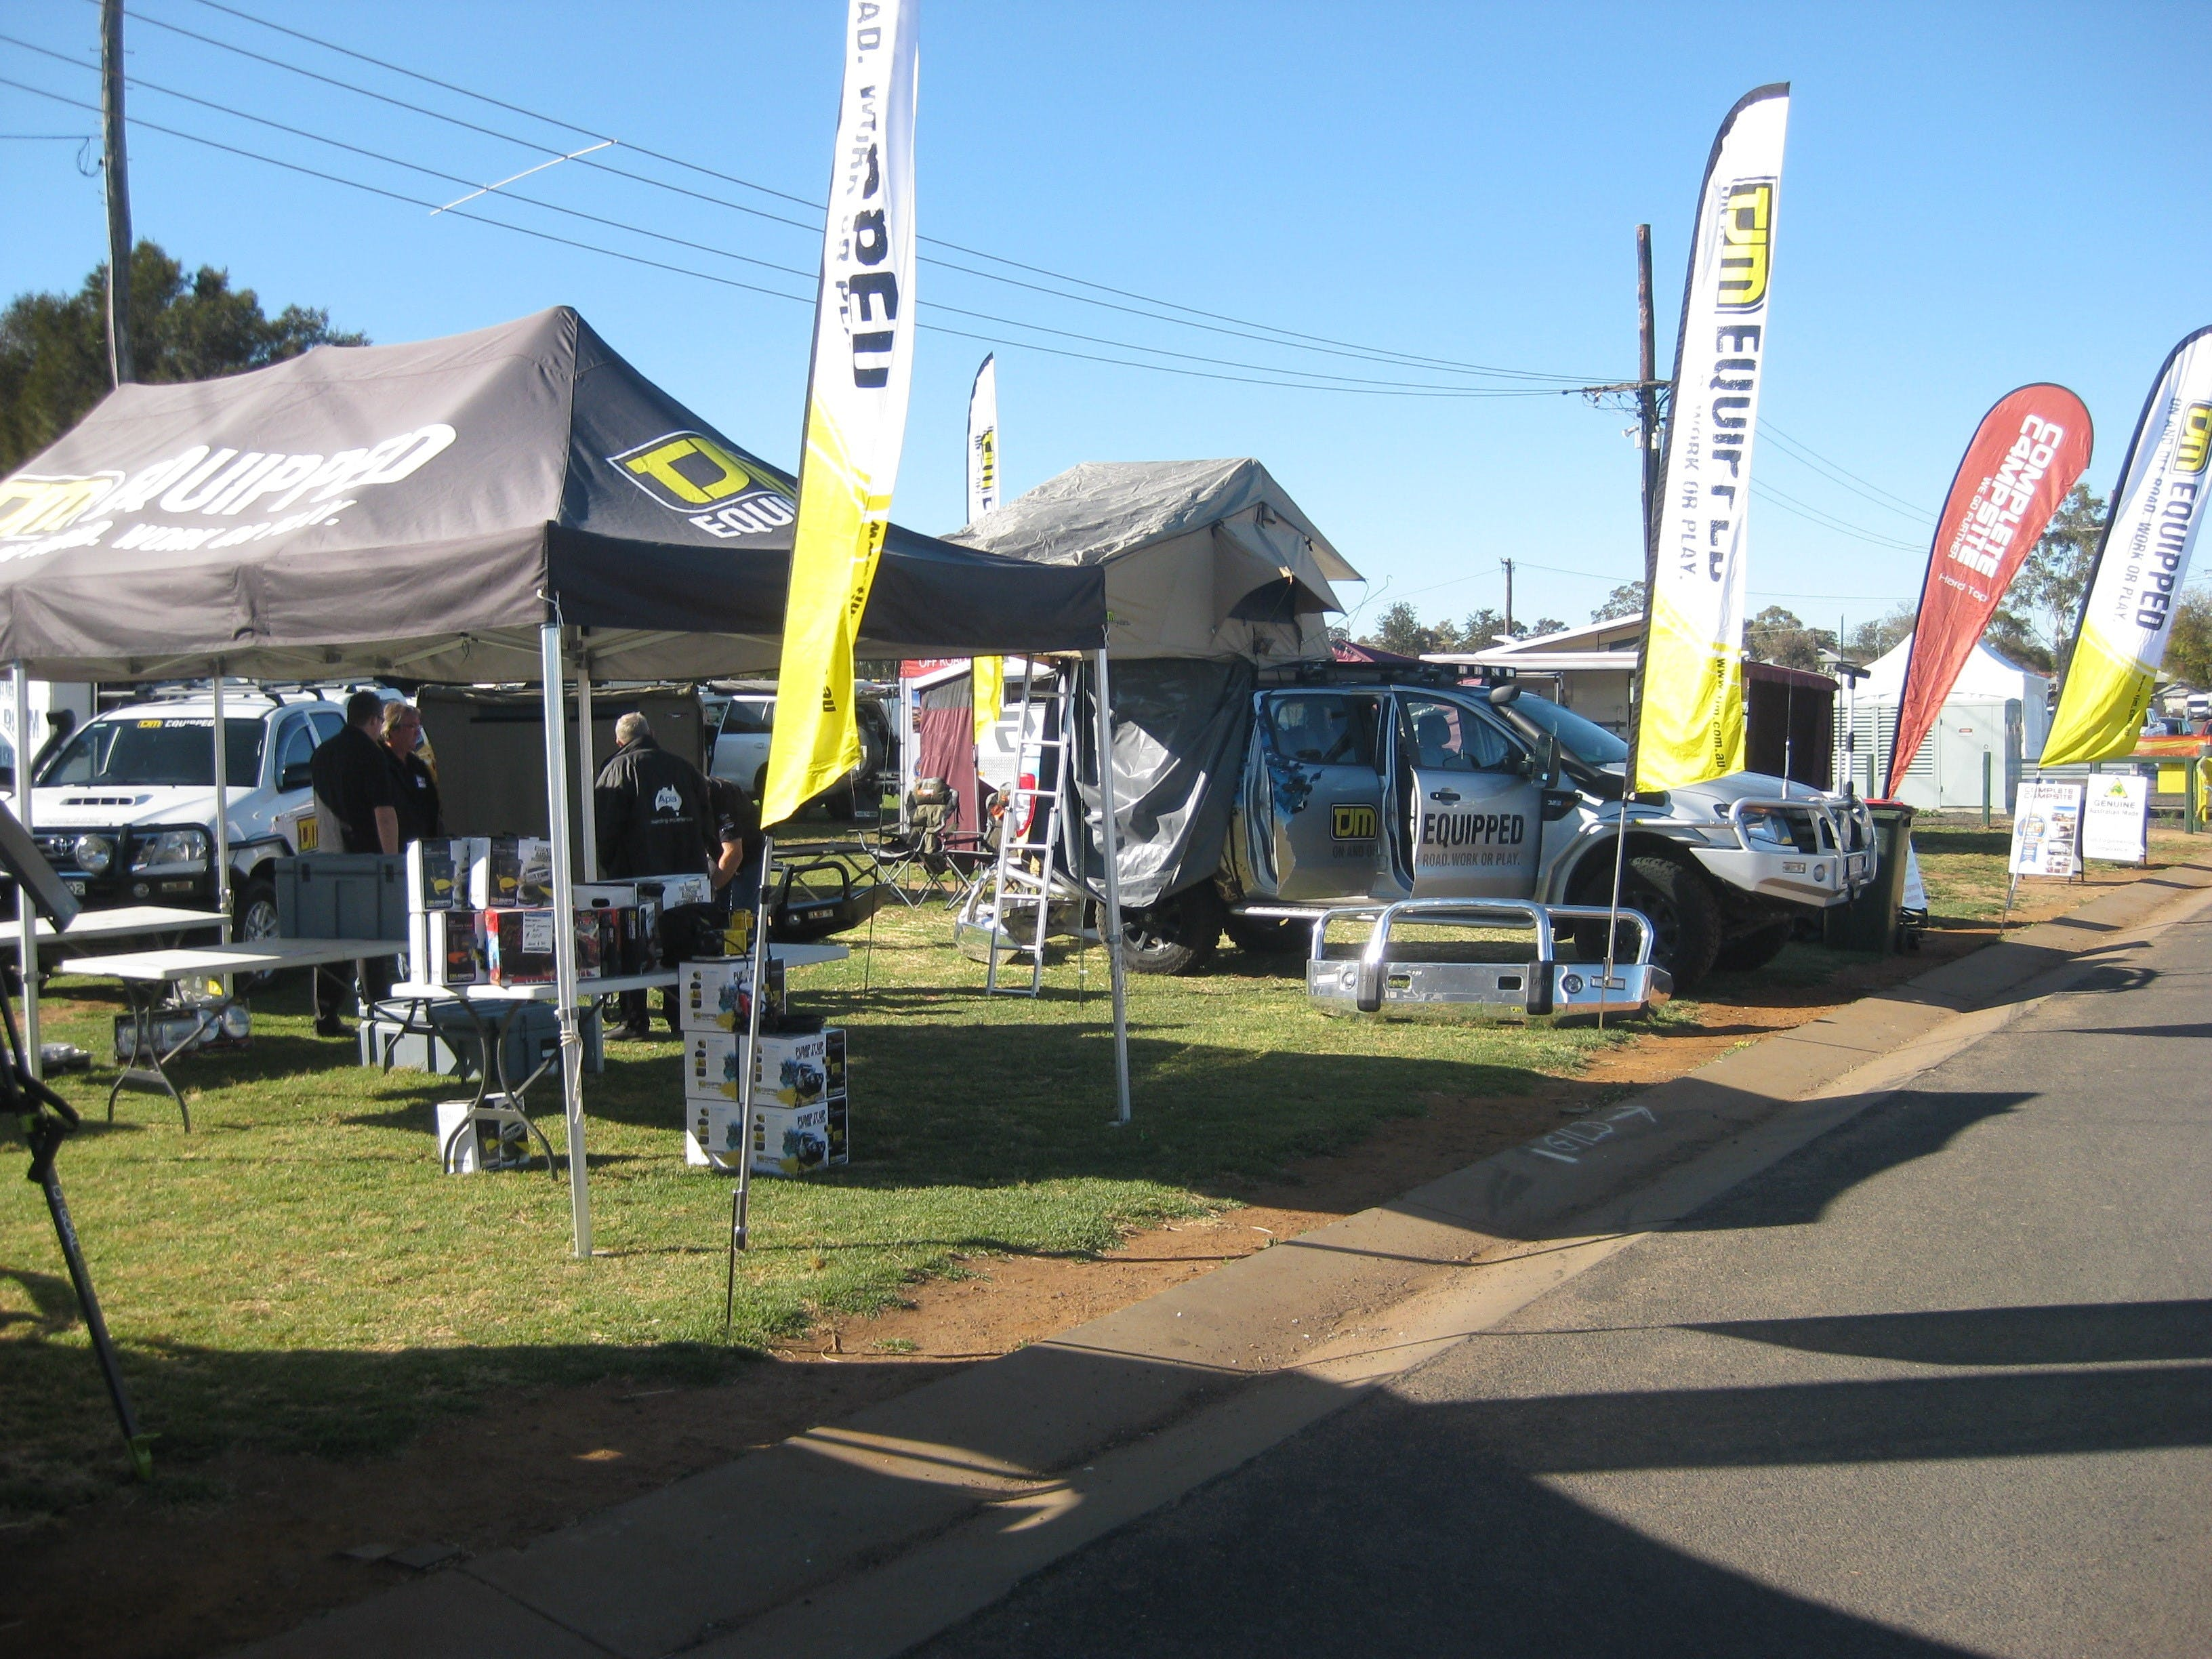 Orana Caravan Camping 4WD Fish and Boat Show - New South Wales Tourism